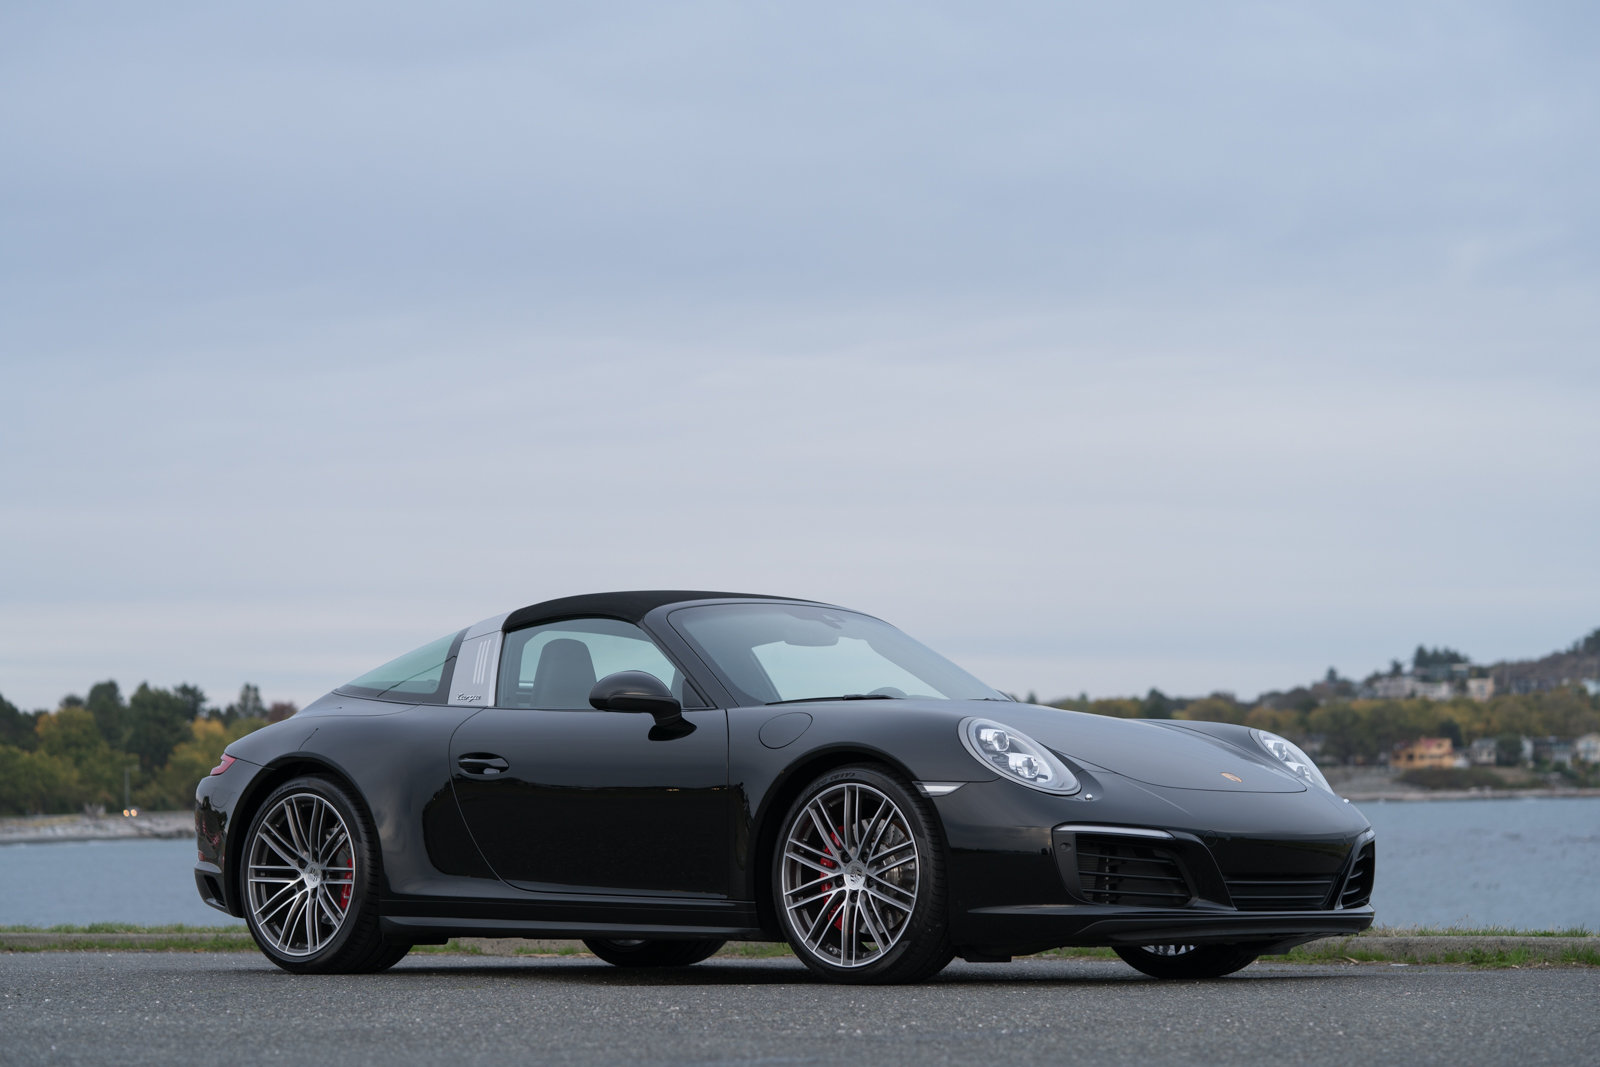 2017 porsche 911 targa 4s for sale in victoria bc silver arrow cars. Black Bedroom Furniture Sets. Home Design Ideas